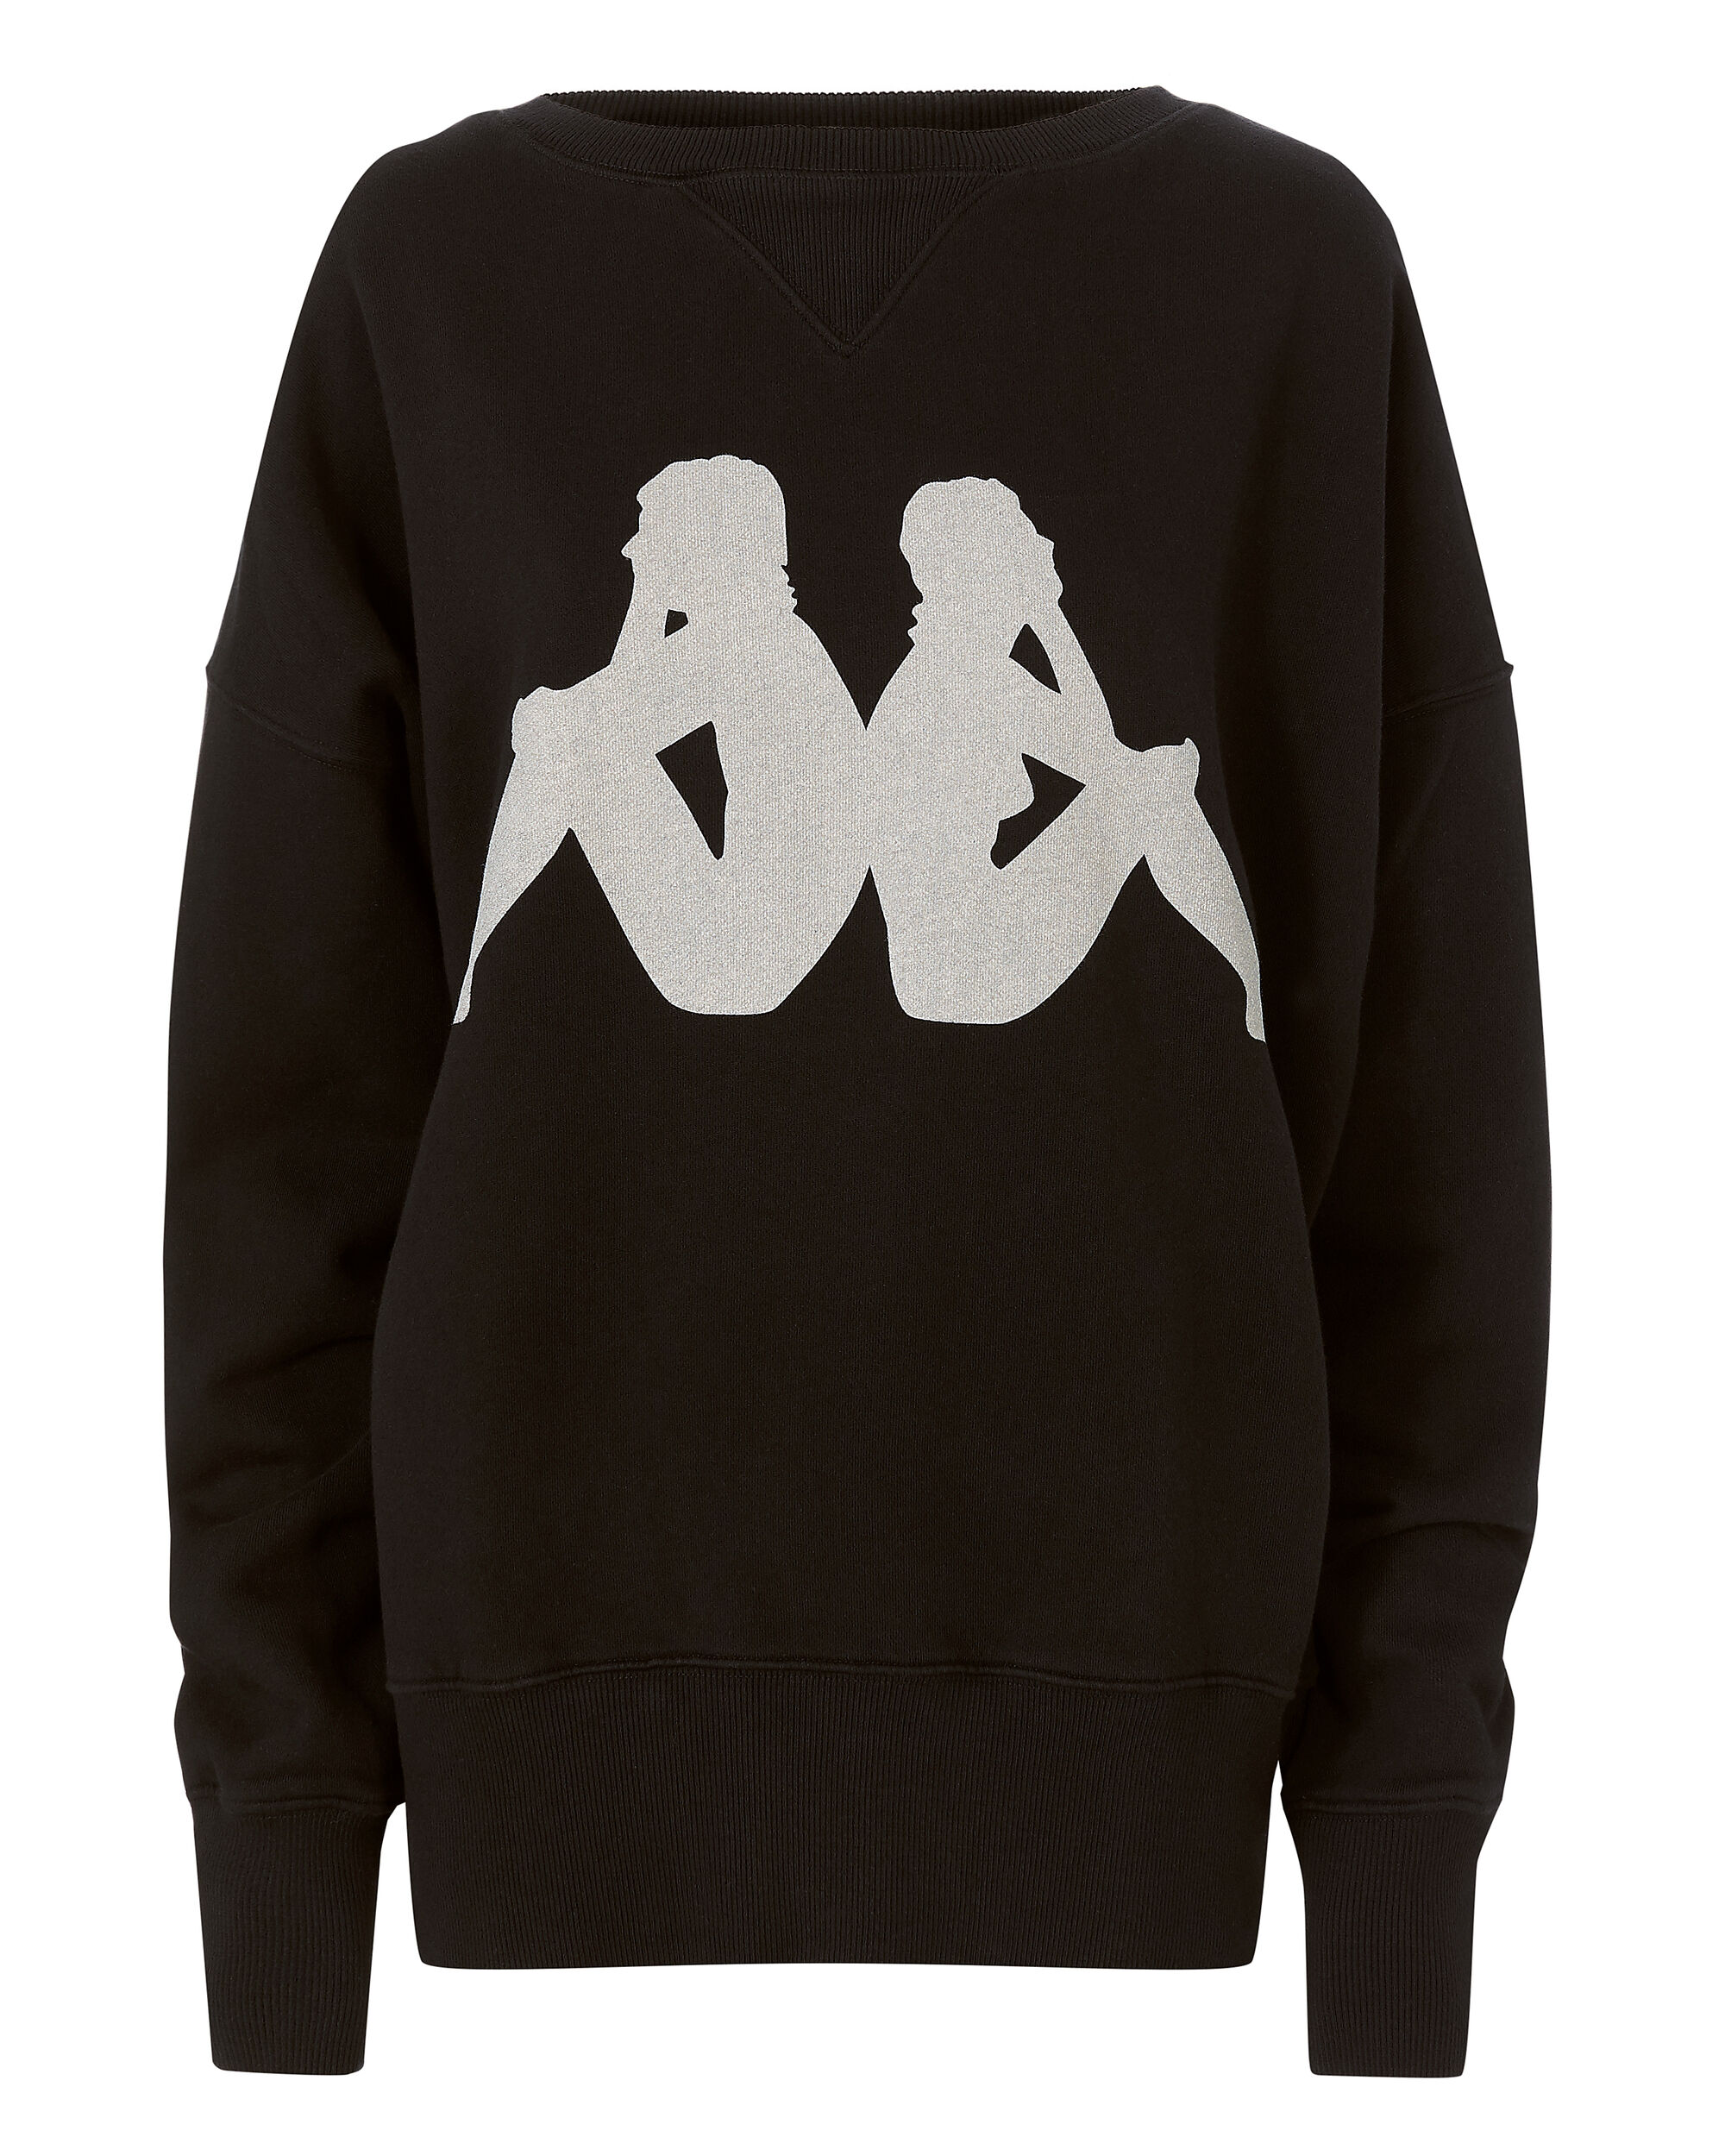 Kappa Los Angeles Sweatshirt, BLACK, hi-res